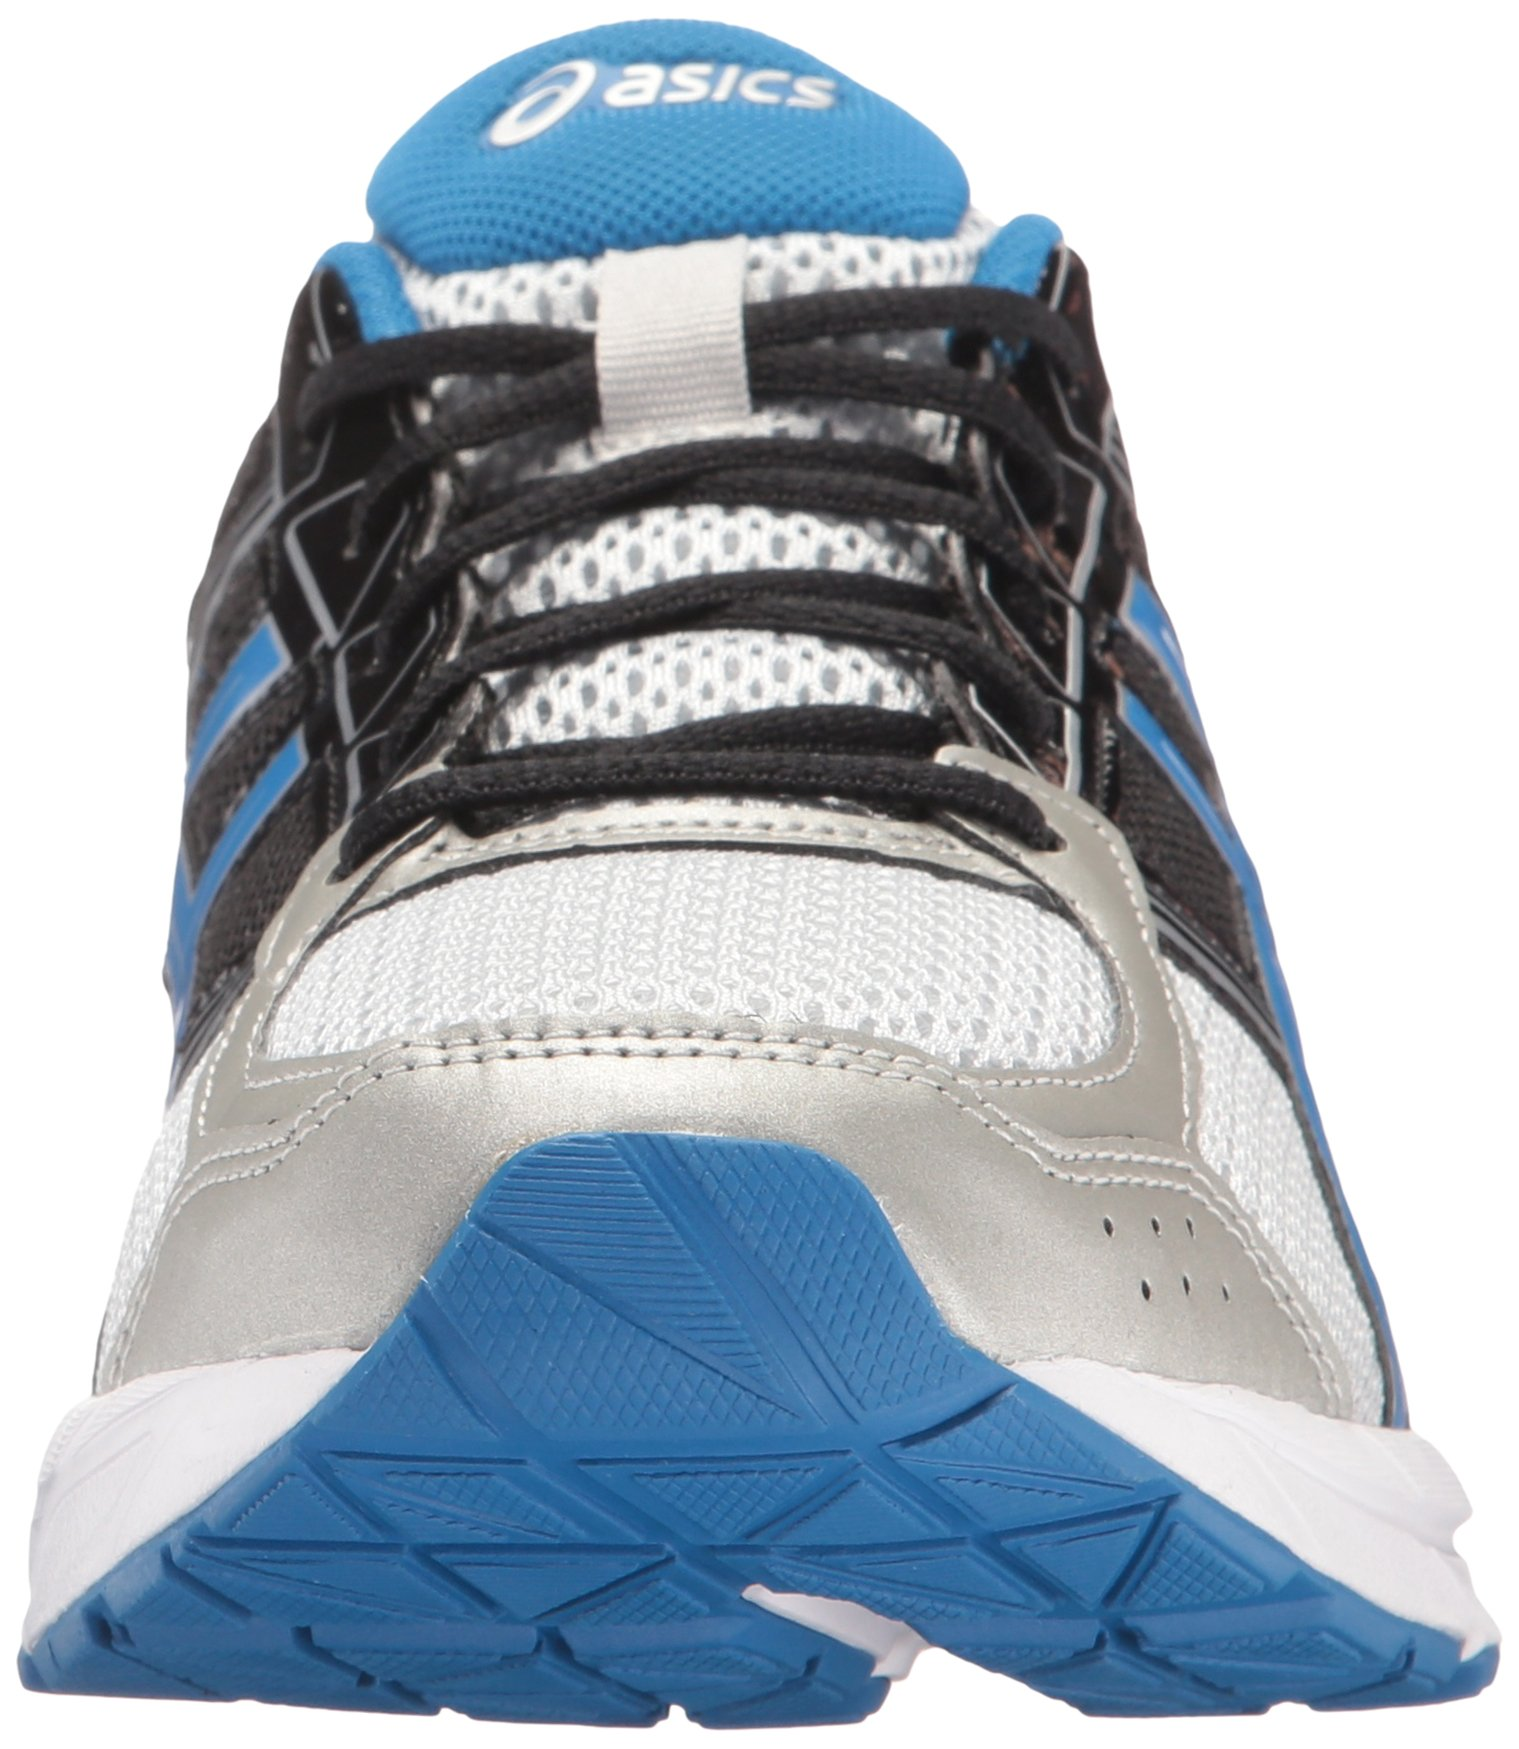 ASICS Men's Gel-Contend 4 Running Shoe, Silver/Classic Blue/Black, 7.5 M US by ASICS (Image #4)